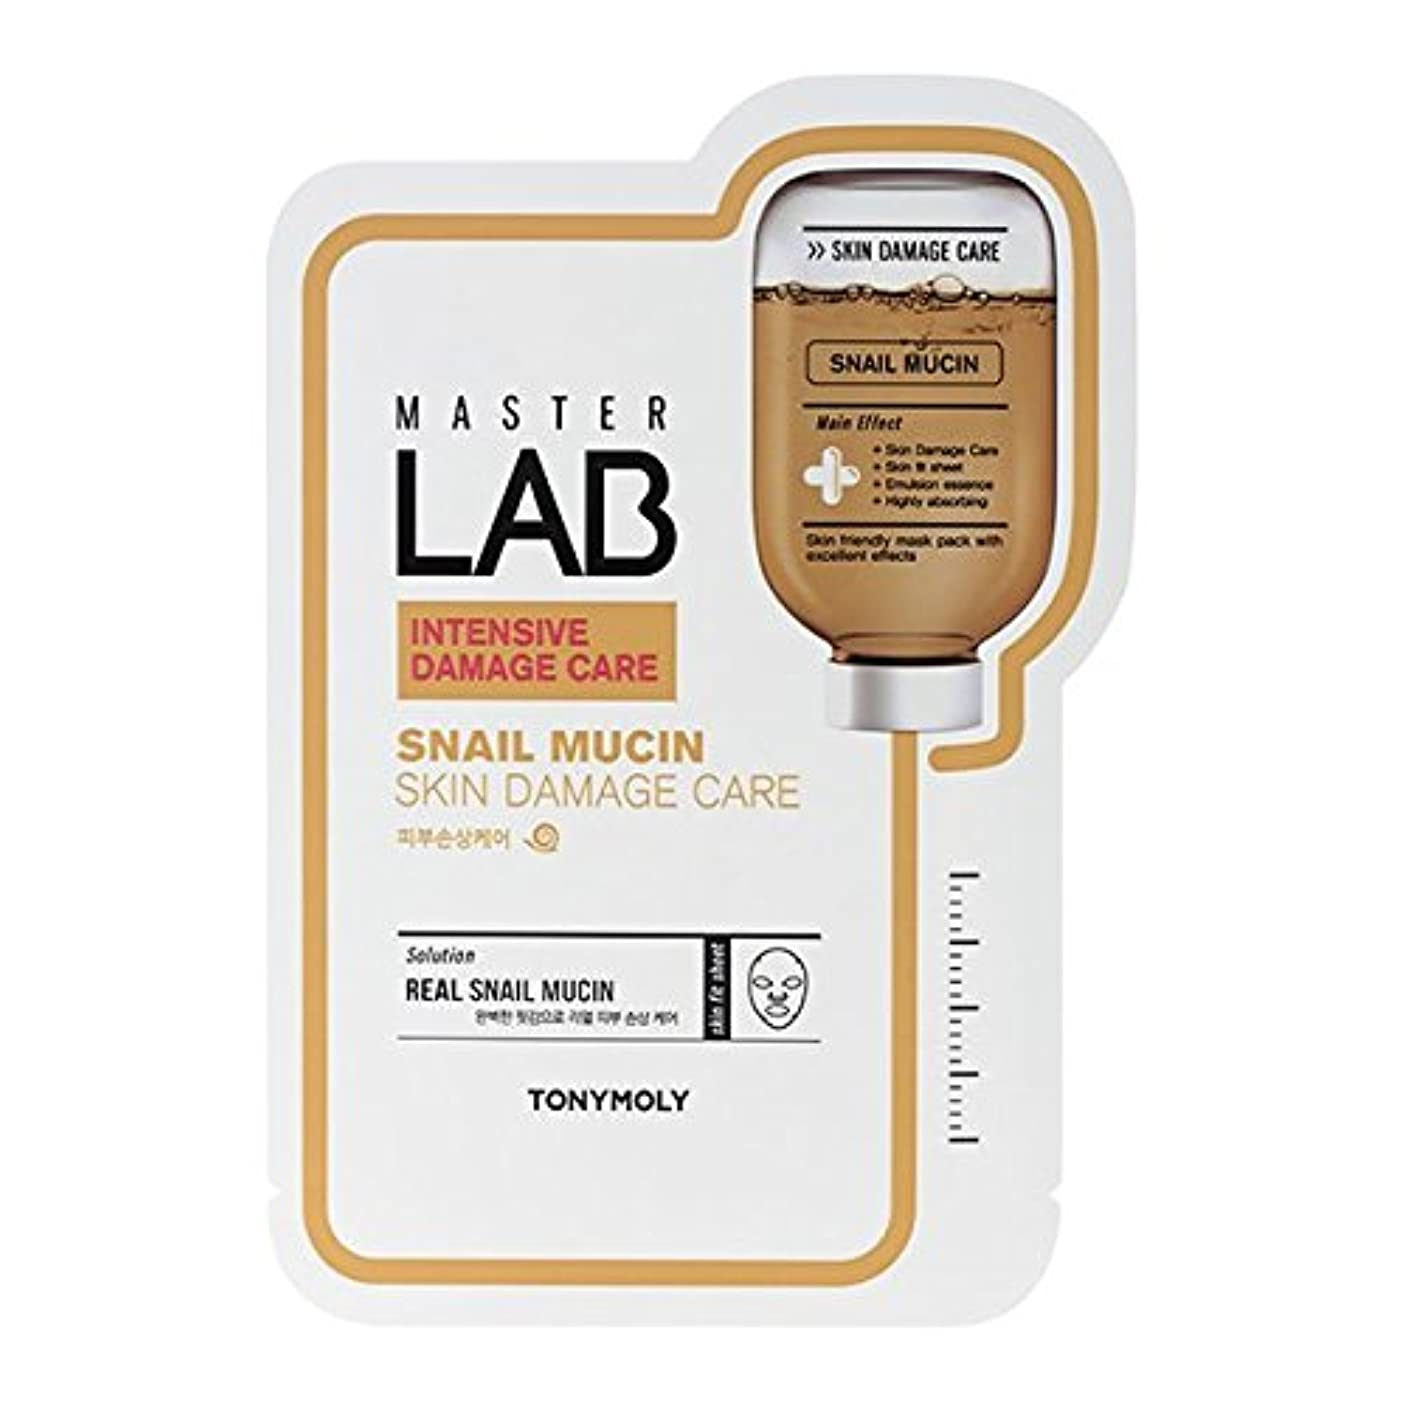 告白仮称わずらわしいTONYMOLY Master Lab Mask Snail Mucin (Skin Damage Care) (並行輸入品)